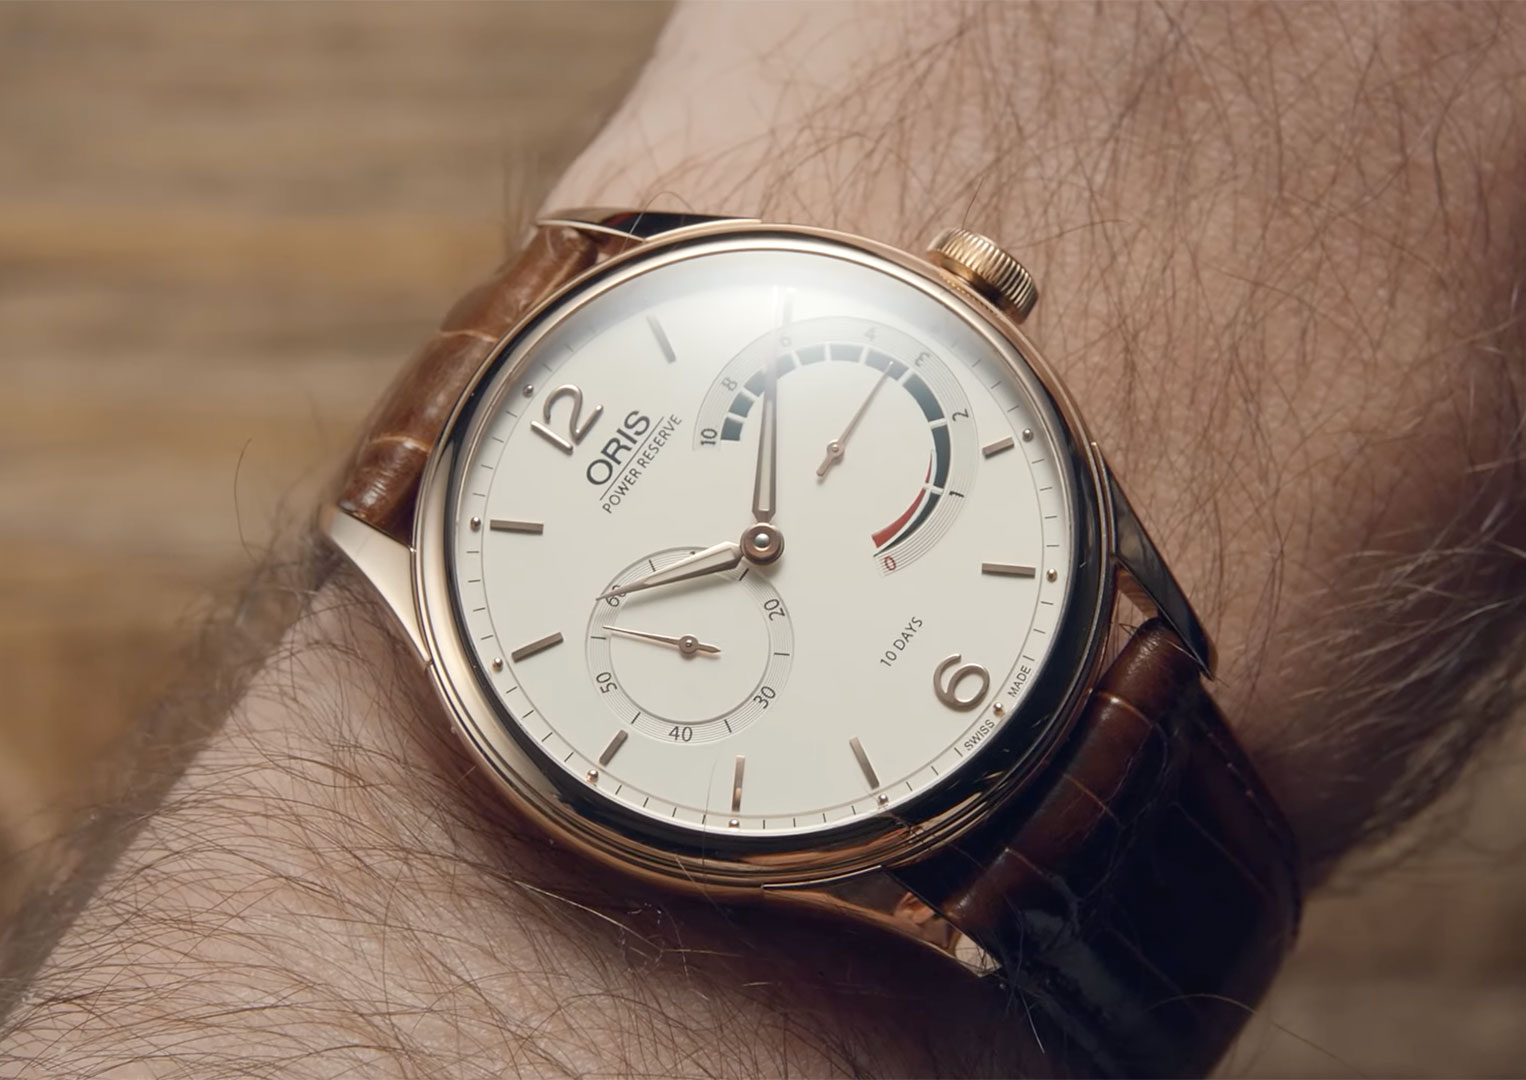 Oris was founded by Paul Cattin and Georges Christian